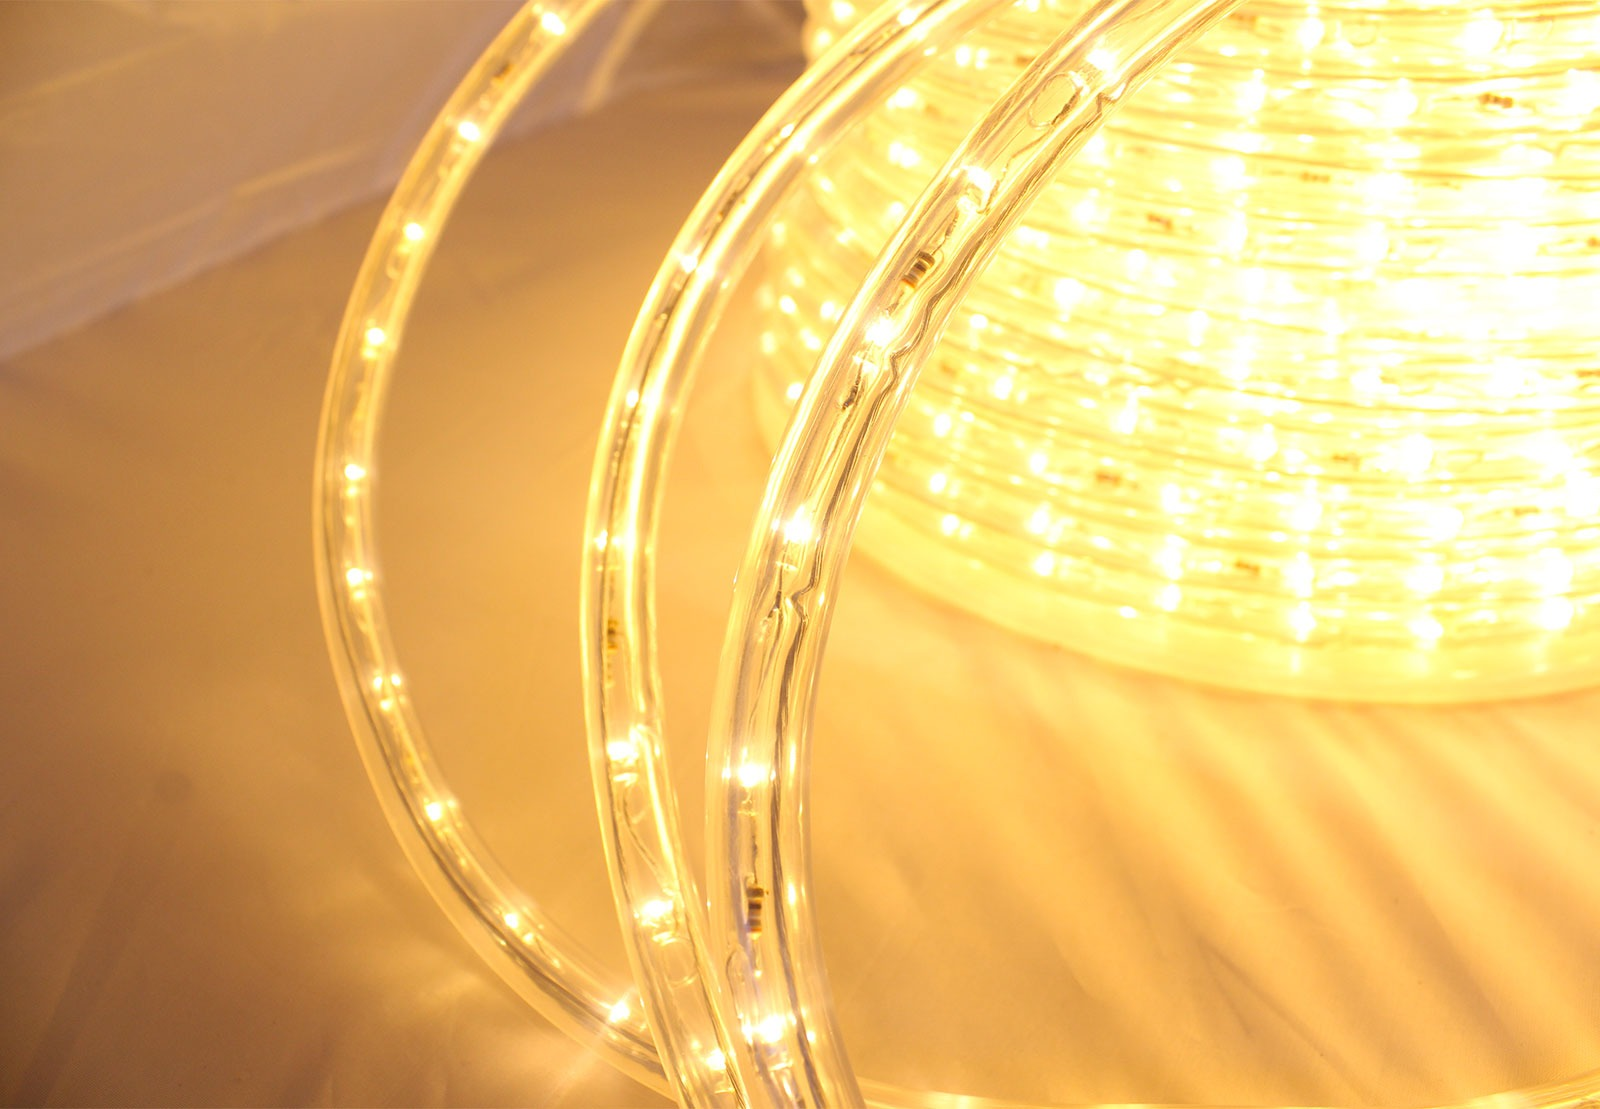 Safety and brightness: the perfect match